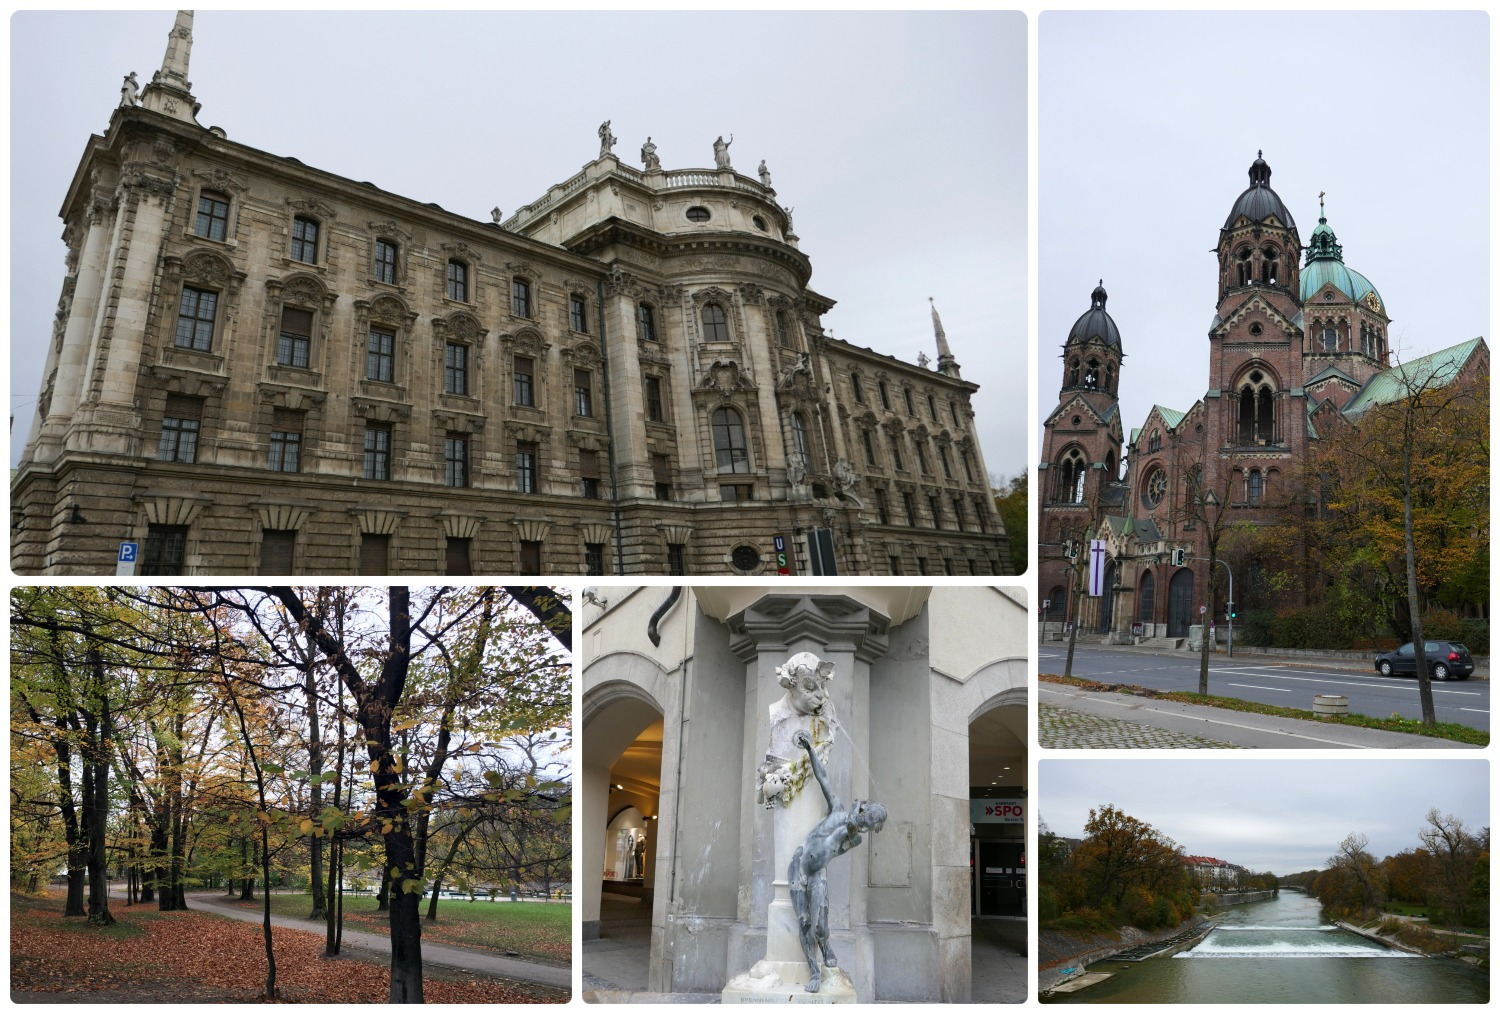 Sightseeing in Munich, Germany. Although many of the museums we wanted to visit were closed due to a holiday, there was still so much to see in Munich! Clockwise (from the top left): District Court Munich I (Landgericht München I), St. Luke's Church, Isar River, Boy at the Fountain (Brunnenbuberl), Maximiliansanlagen Park.